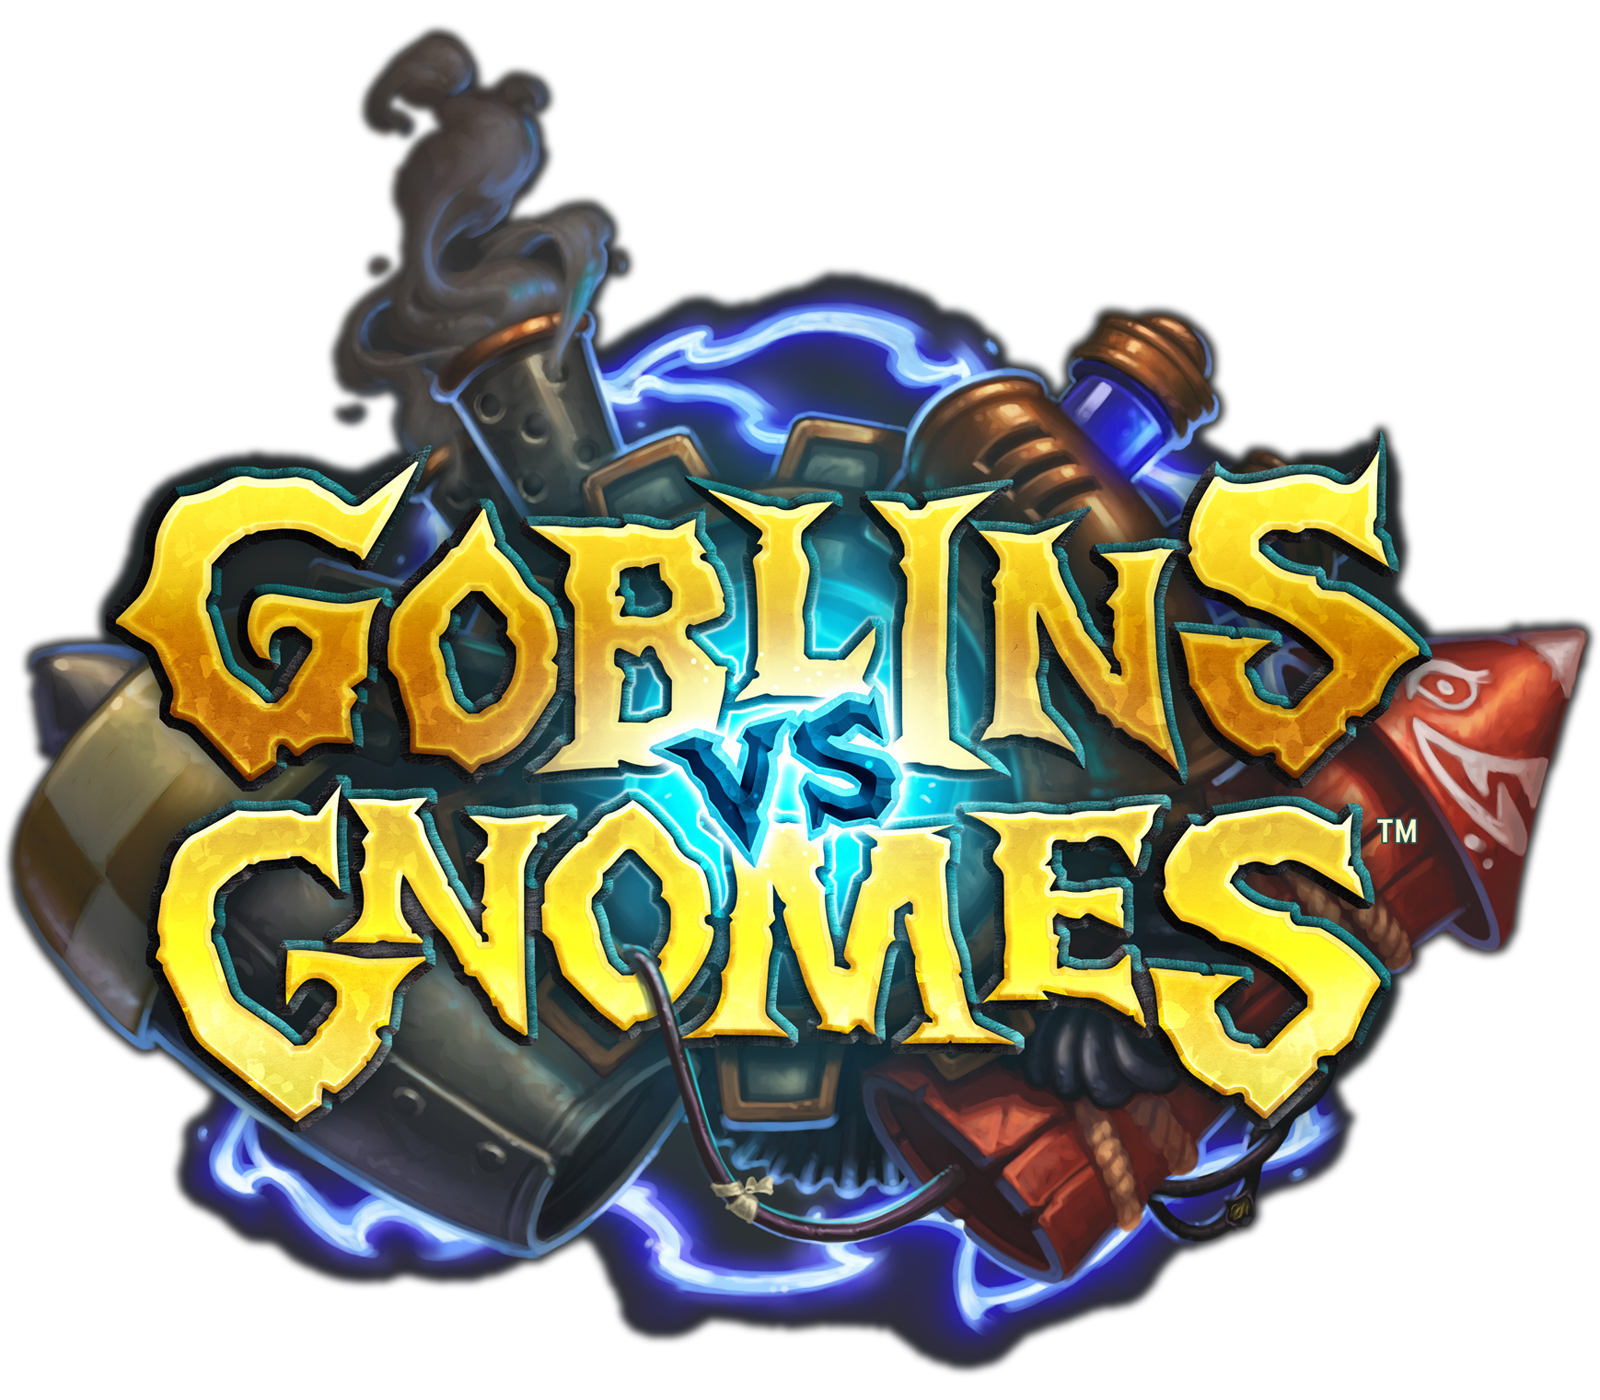 Goblins Vs Gnomes Hearthstone Heroes Of Warcraft Wiki Fandom Recently added 35+ hearthstone logo vector images of various designs. goblins vs gnomes hearthstone heroes